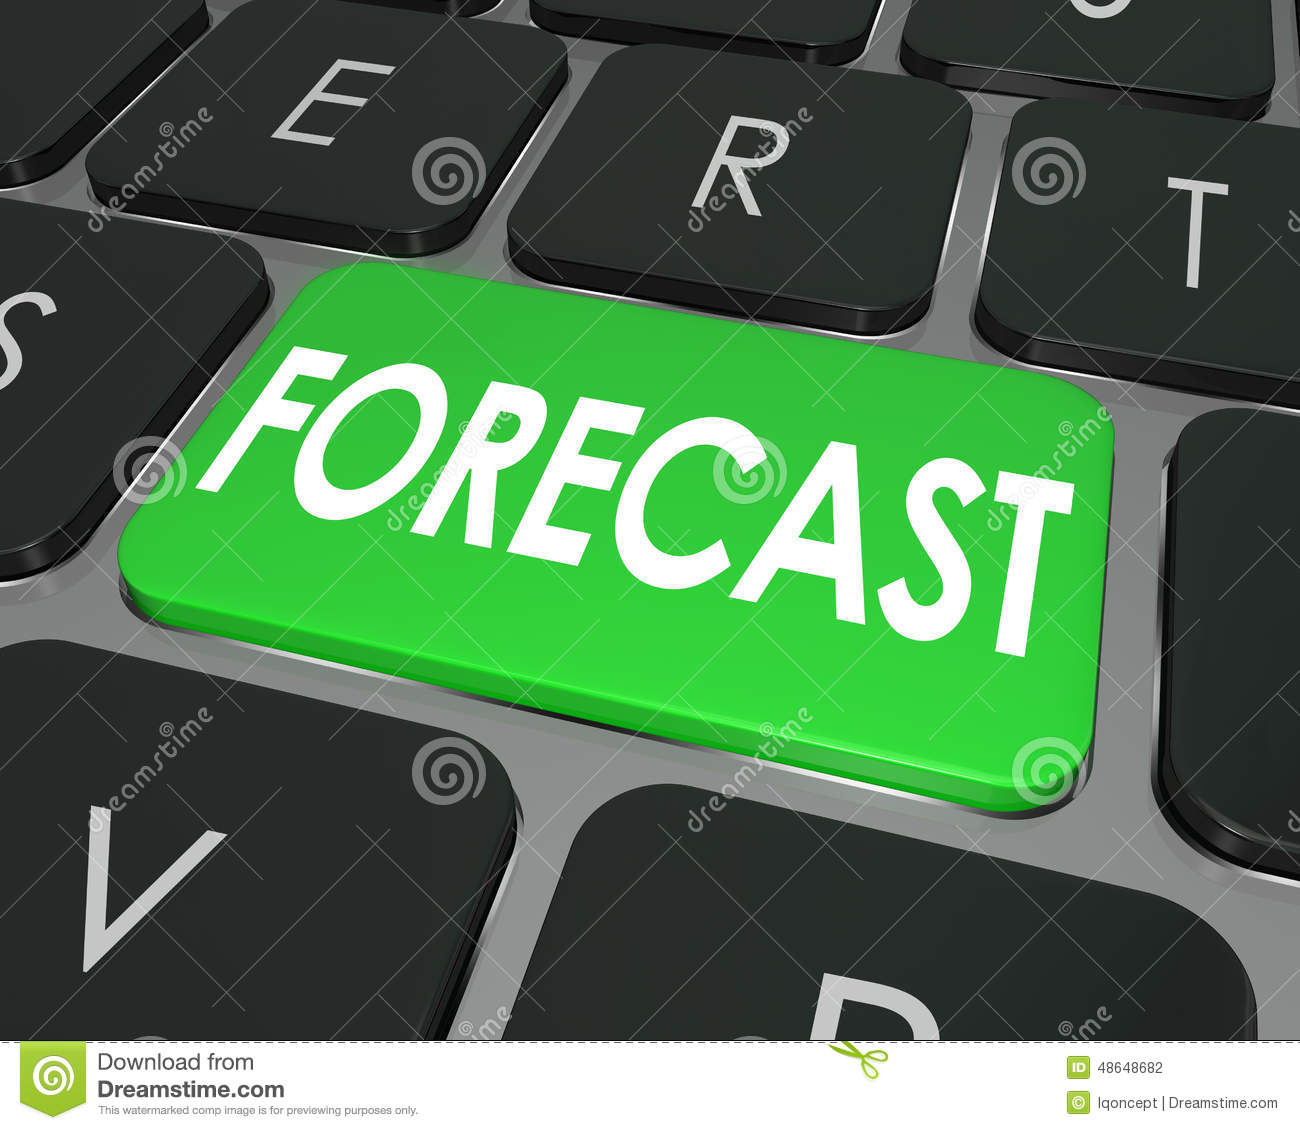 forecast word computer keyboard button future finance congratulations clip art images png congratulations clip art images engaged free